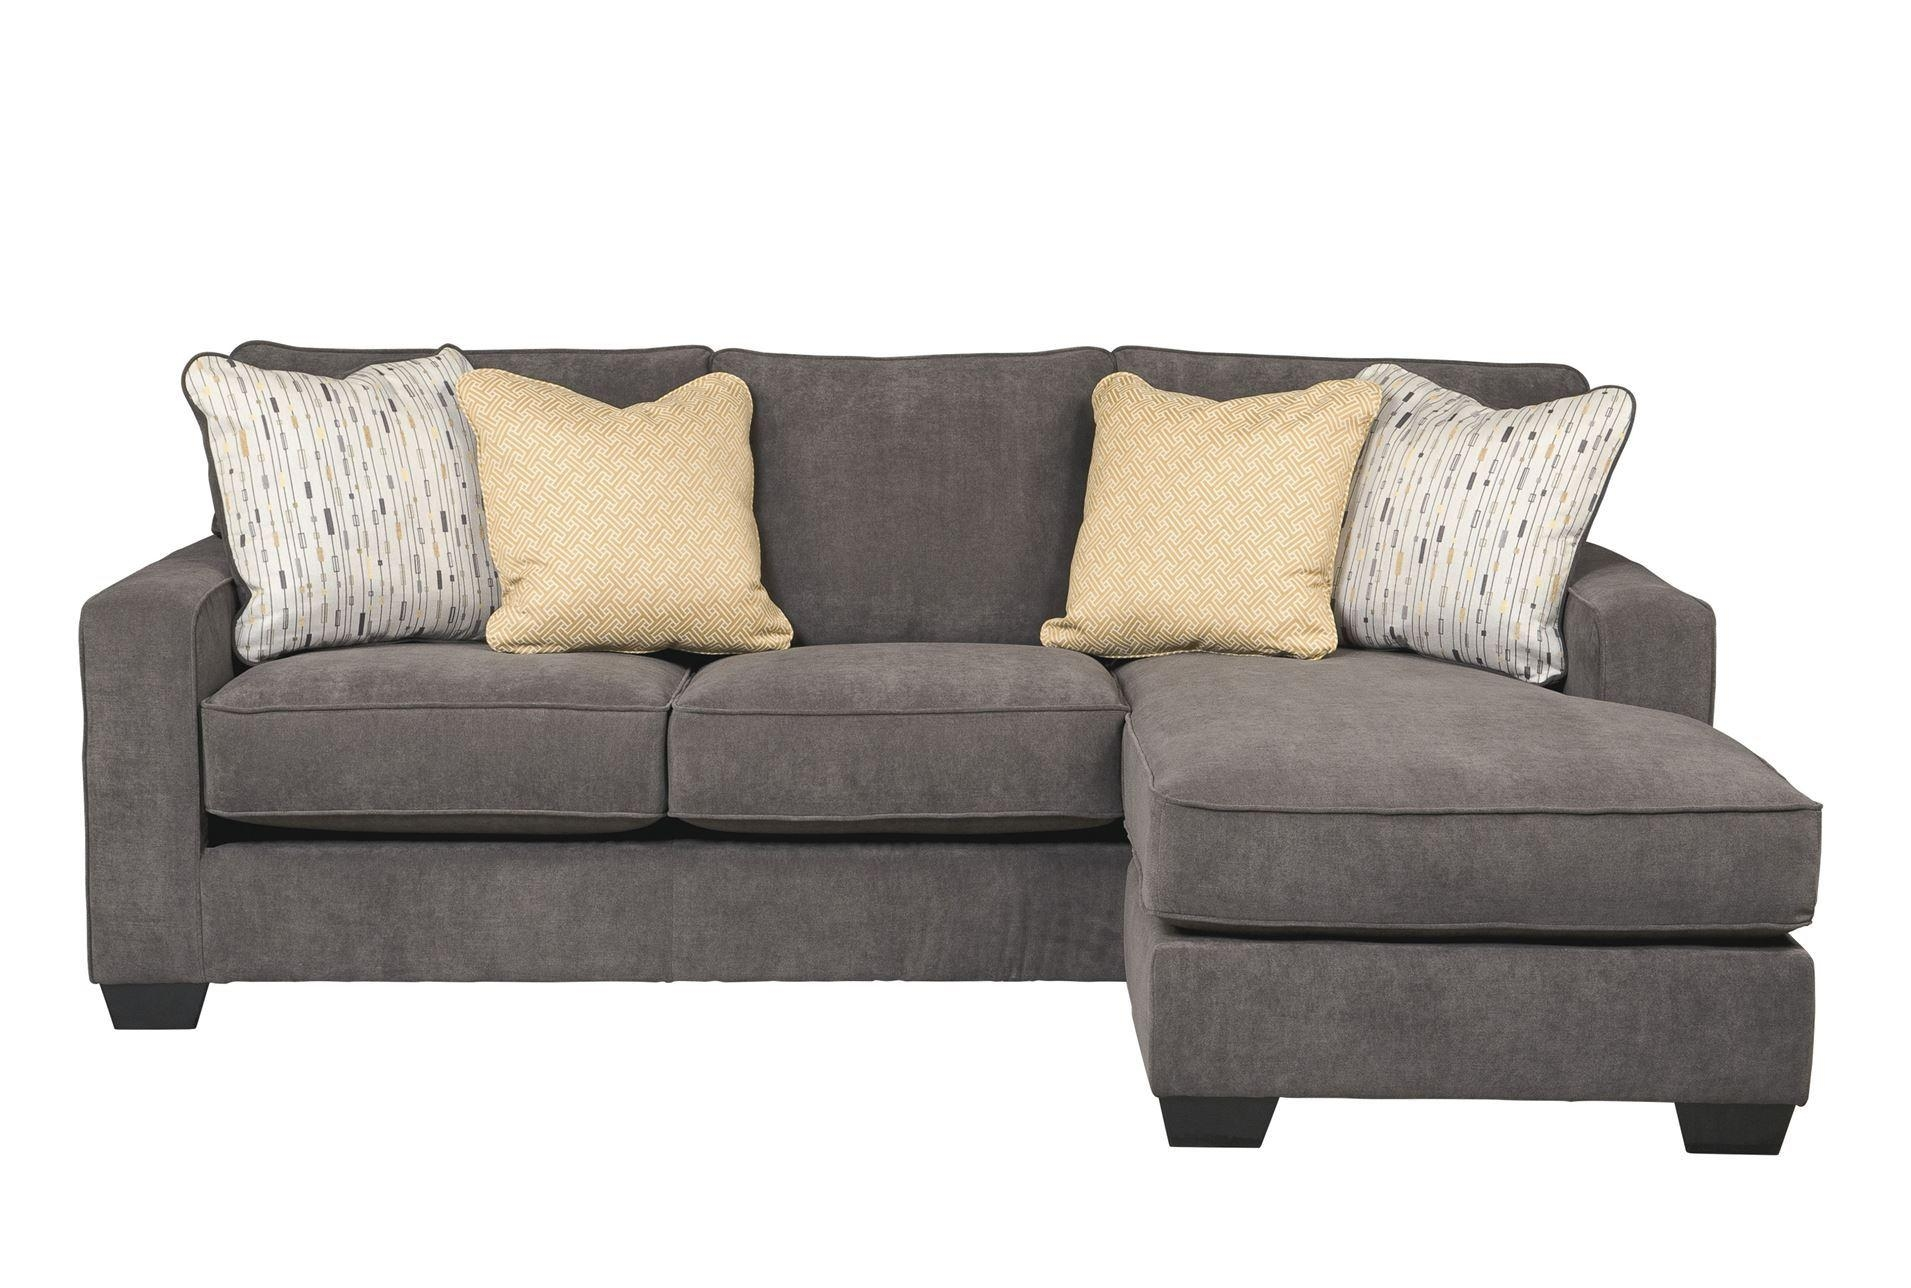 Sofa With Chaise Lounge – Helpformycredit With Sofas With Chaise Longue (View 13 of 20)